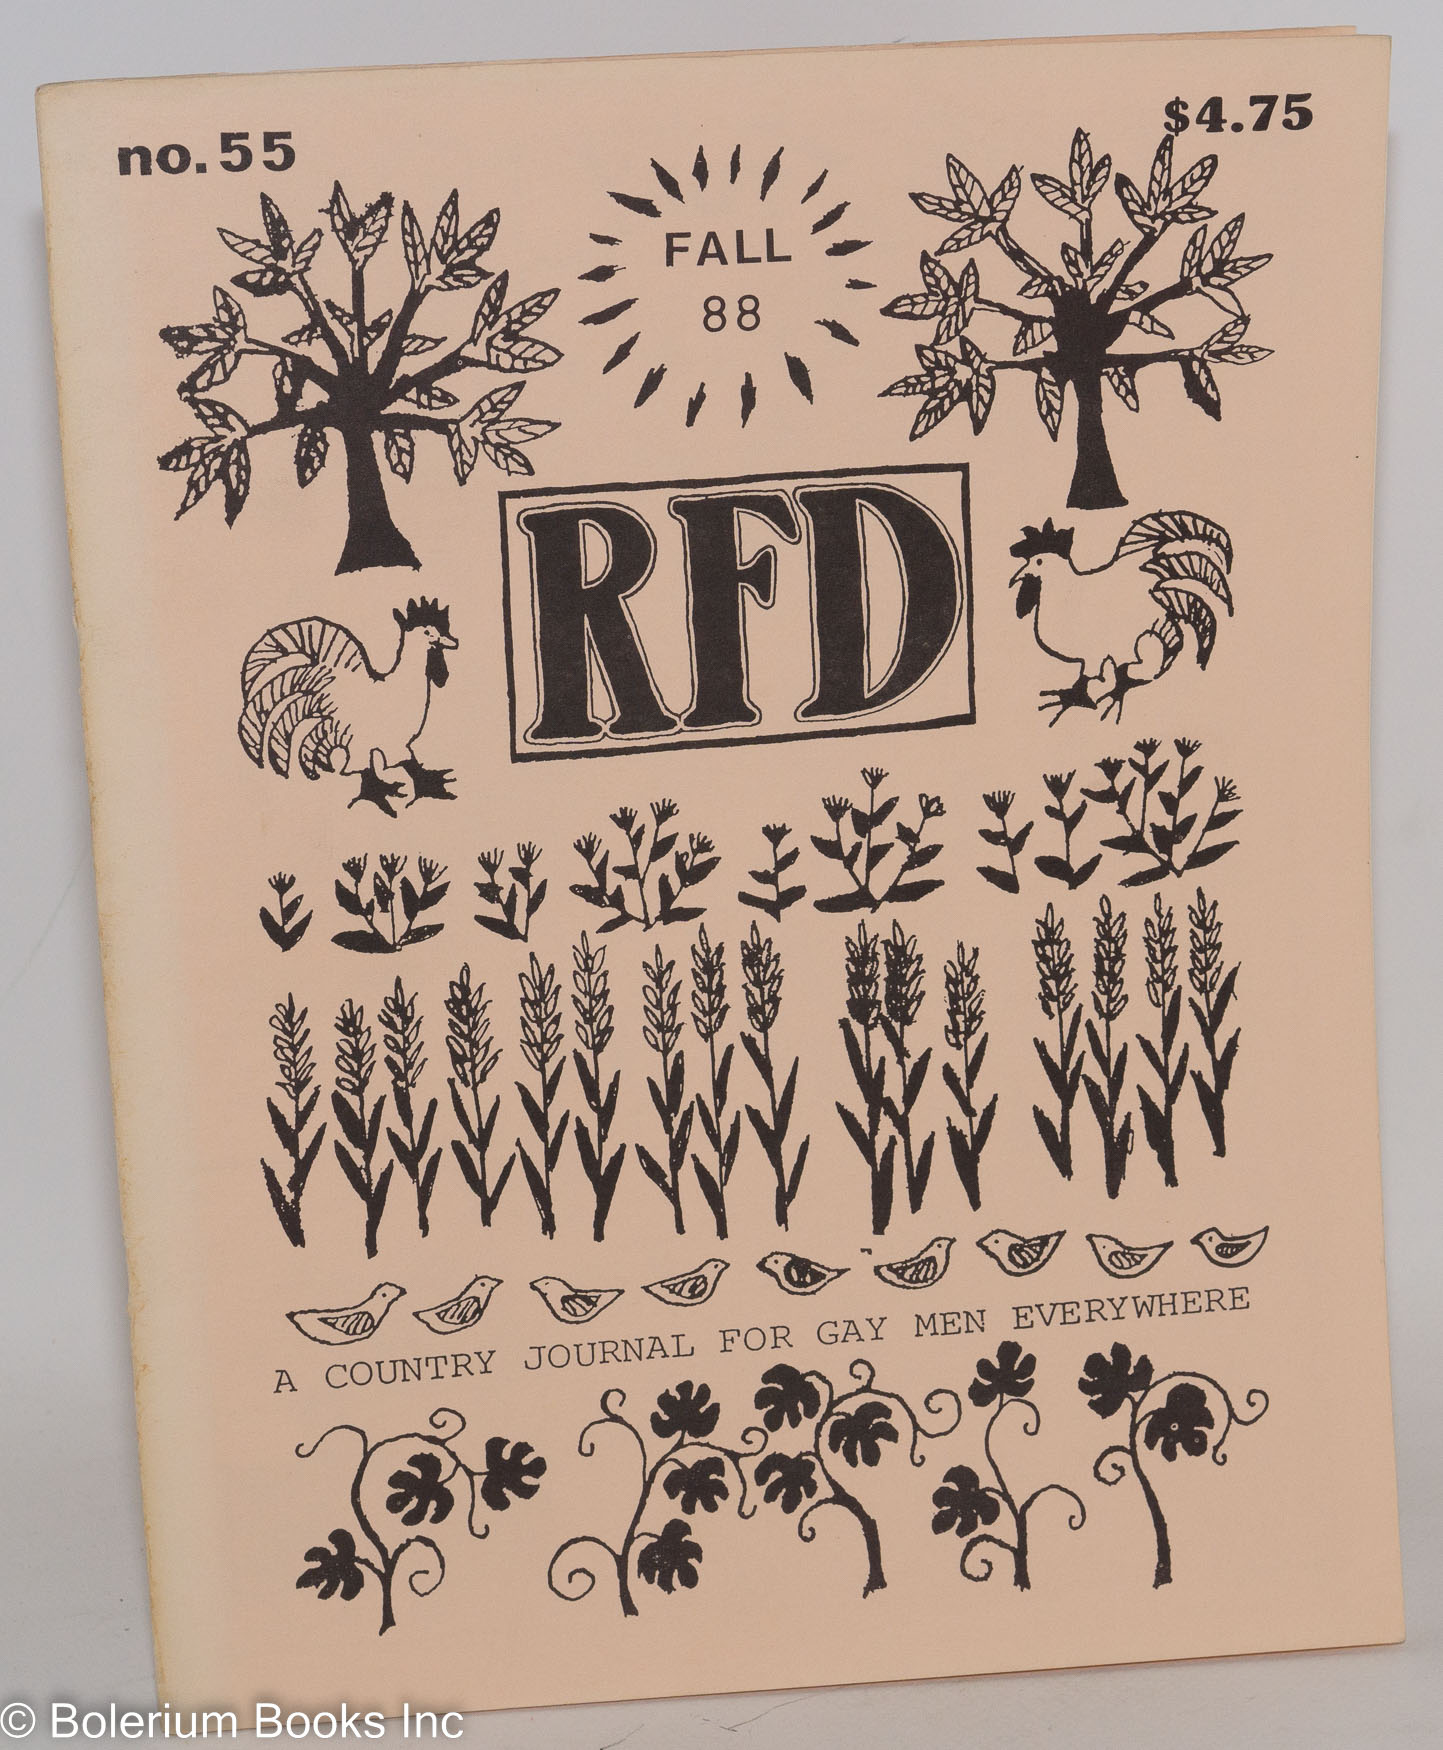 Rfd A Country Journal For Gay Men Everywhere #55, Fall